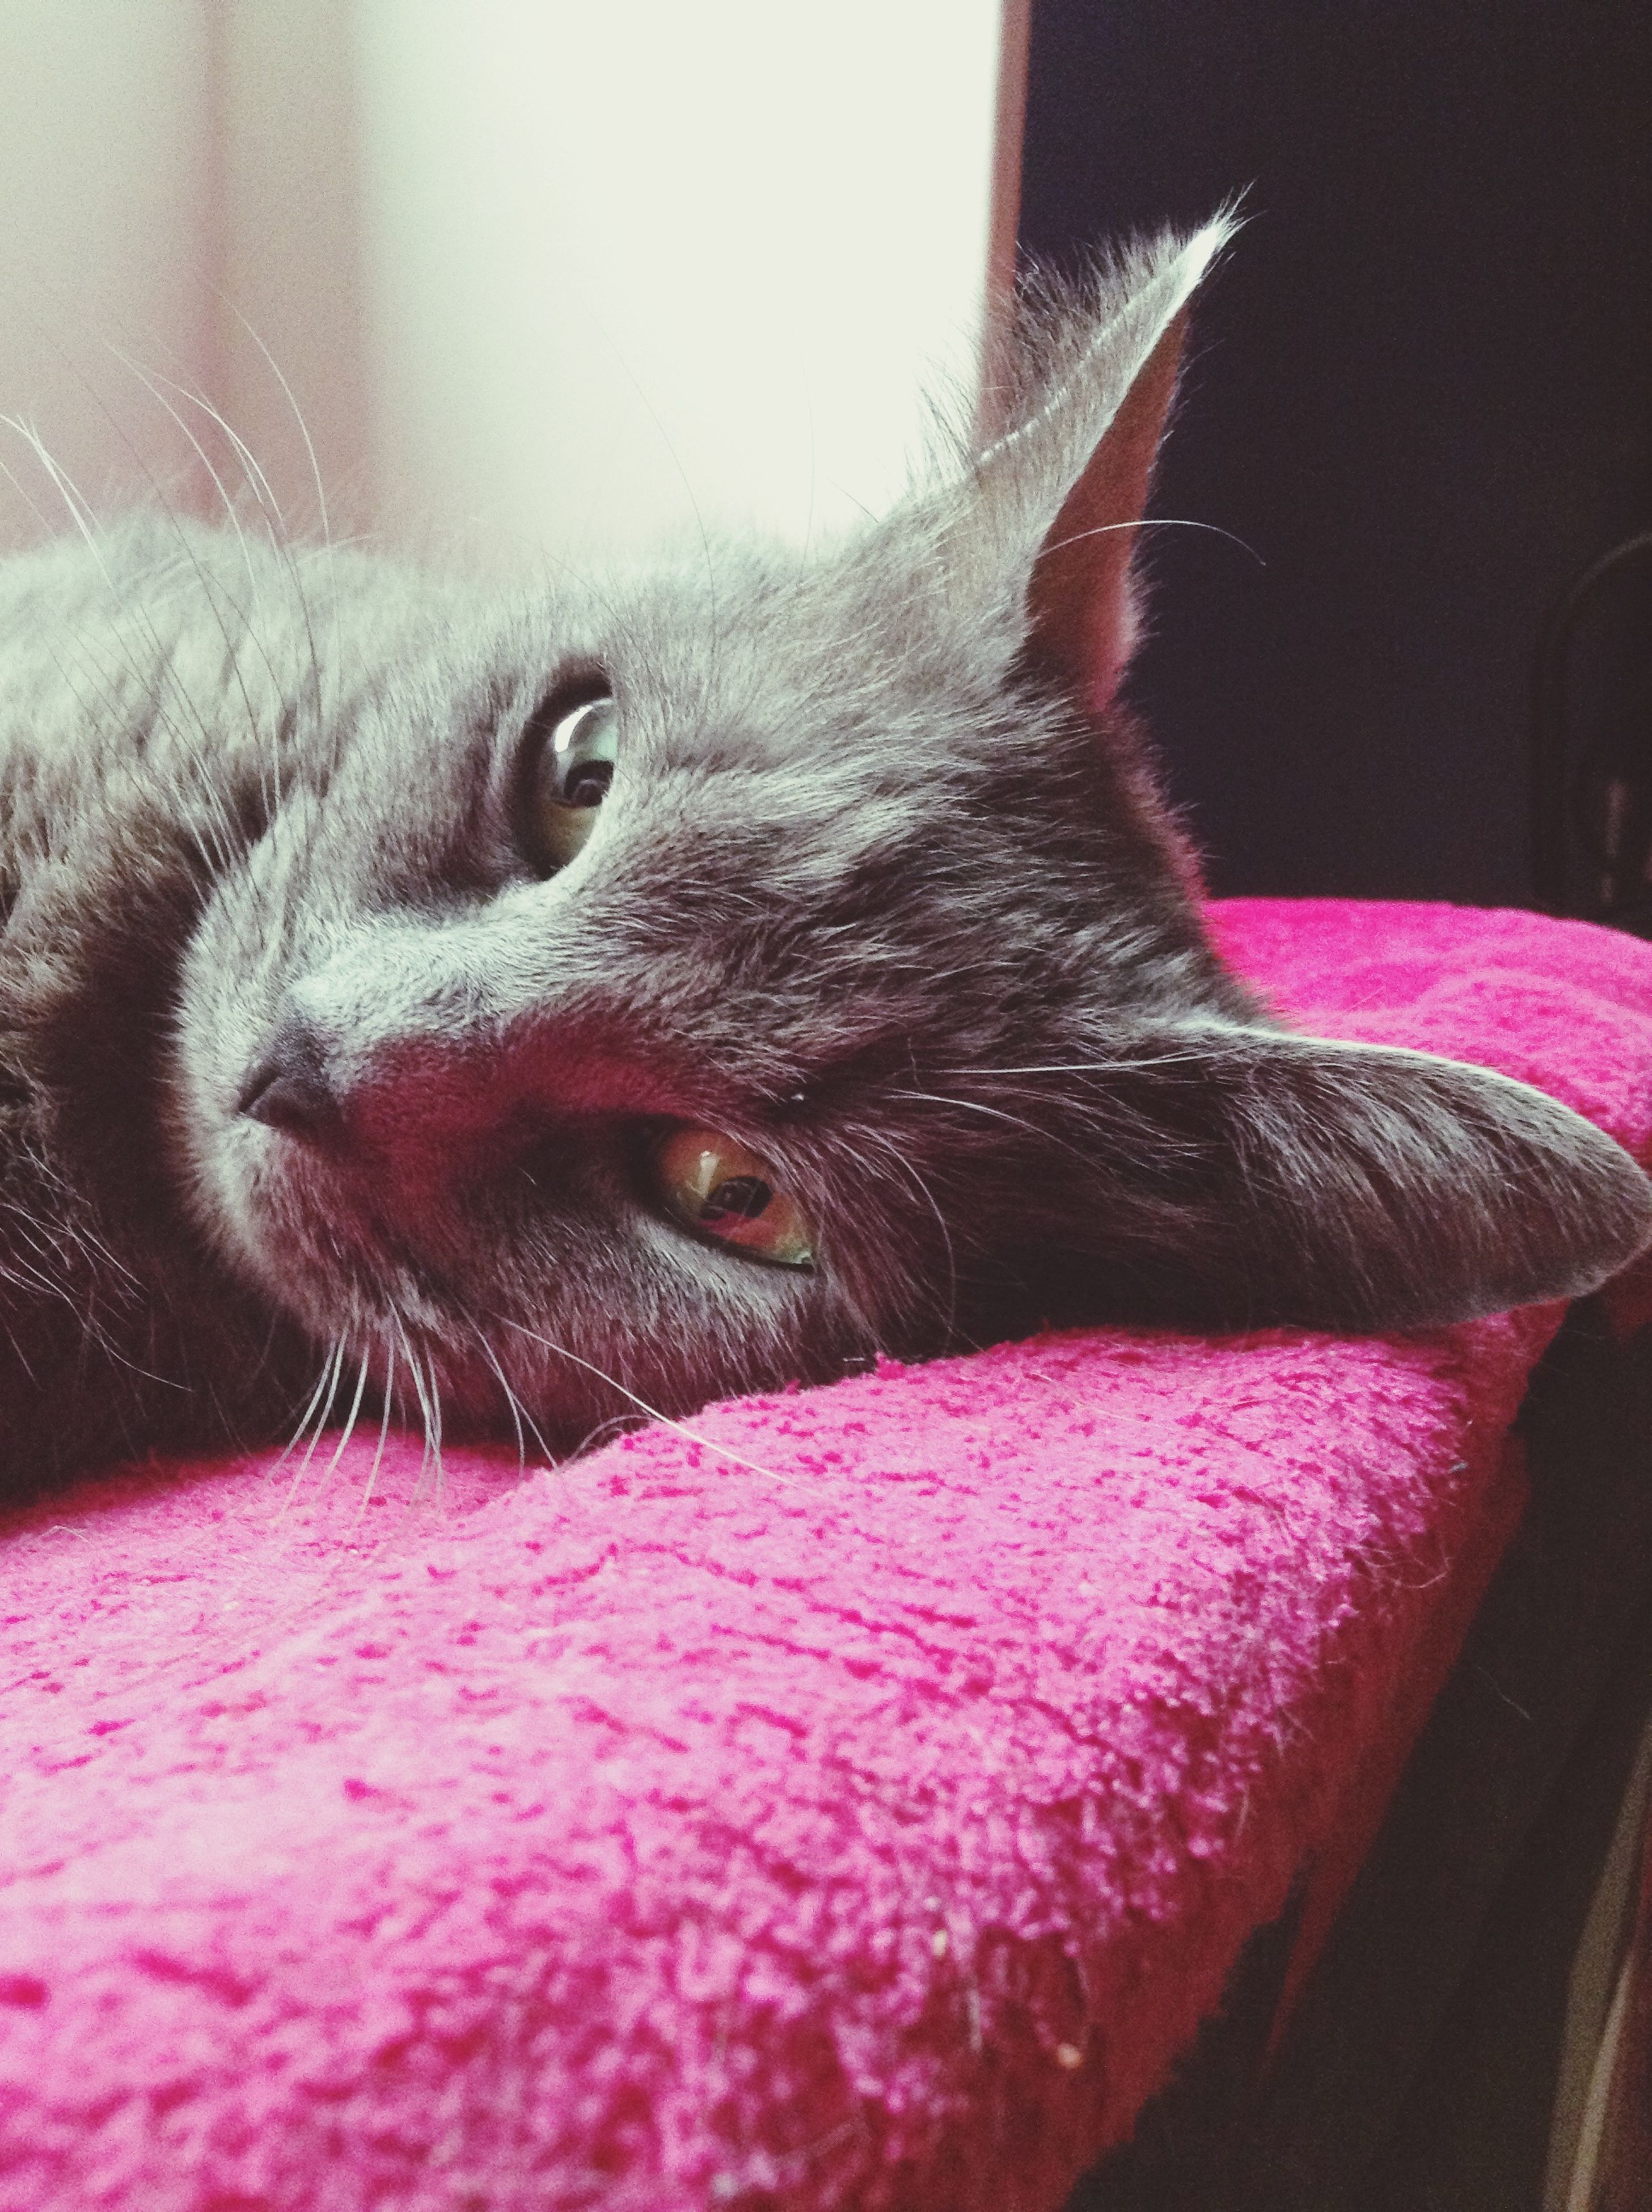 domestic cat, pets, domestic animals, one animal, cat, animal themes, indoors, feline, mammal, whisker, relaxation, close-up, animal head, home interior, bed, resting, looking away, portrait, lying down, animal body part